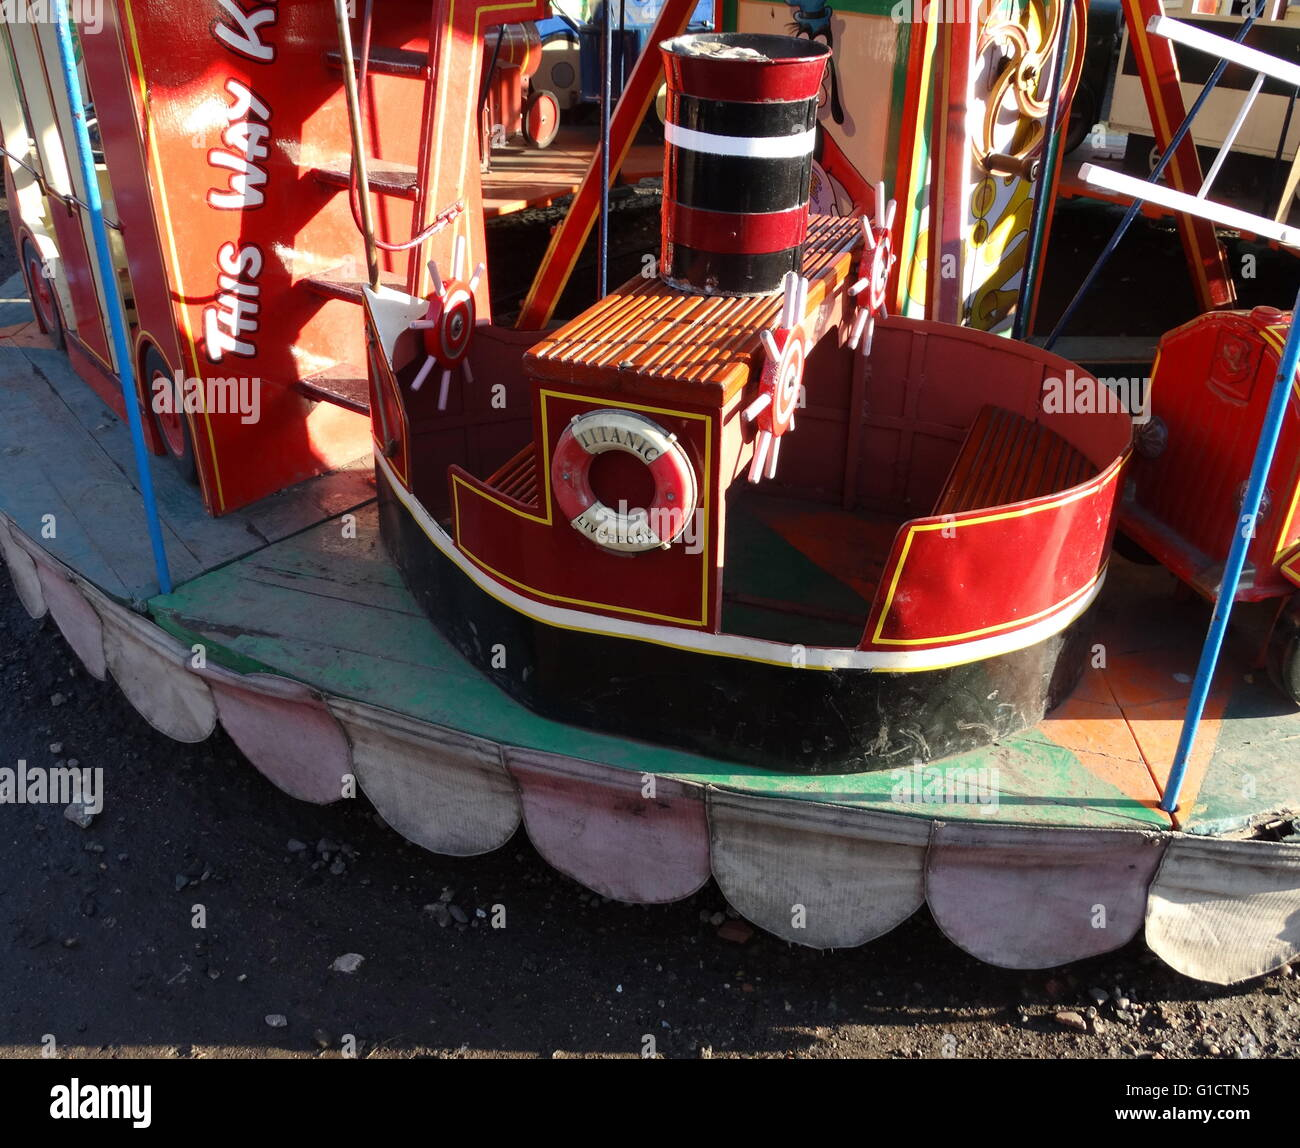 reconstructed merry go round northern England, circa 1930 - Stock Image